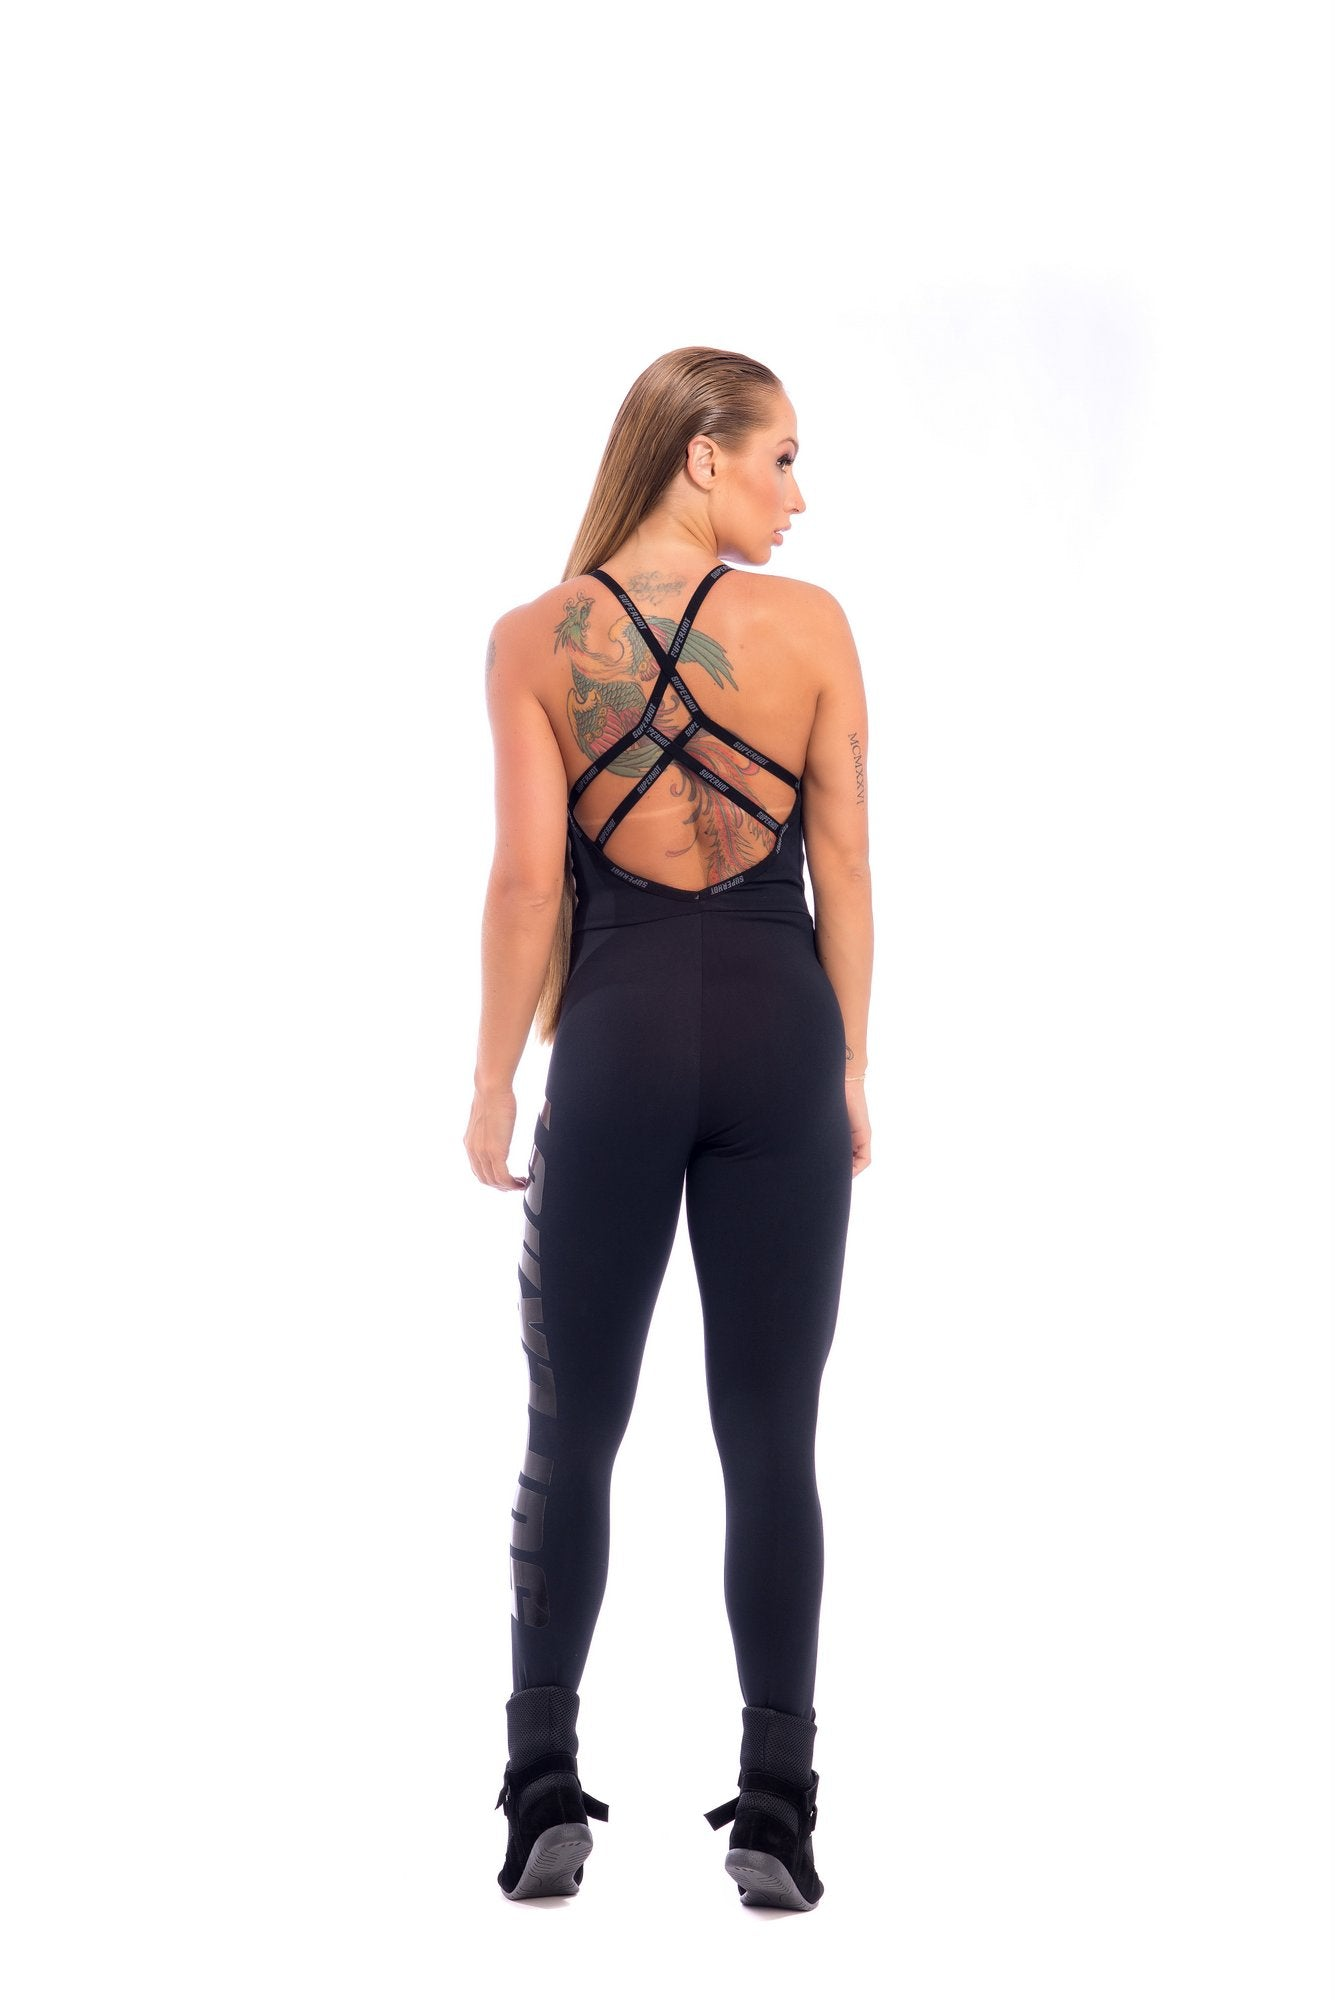 Meshed Jumpsuit - PRE ORDER ONLY - SUPERHOT - FitZee